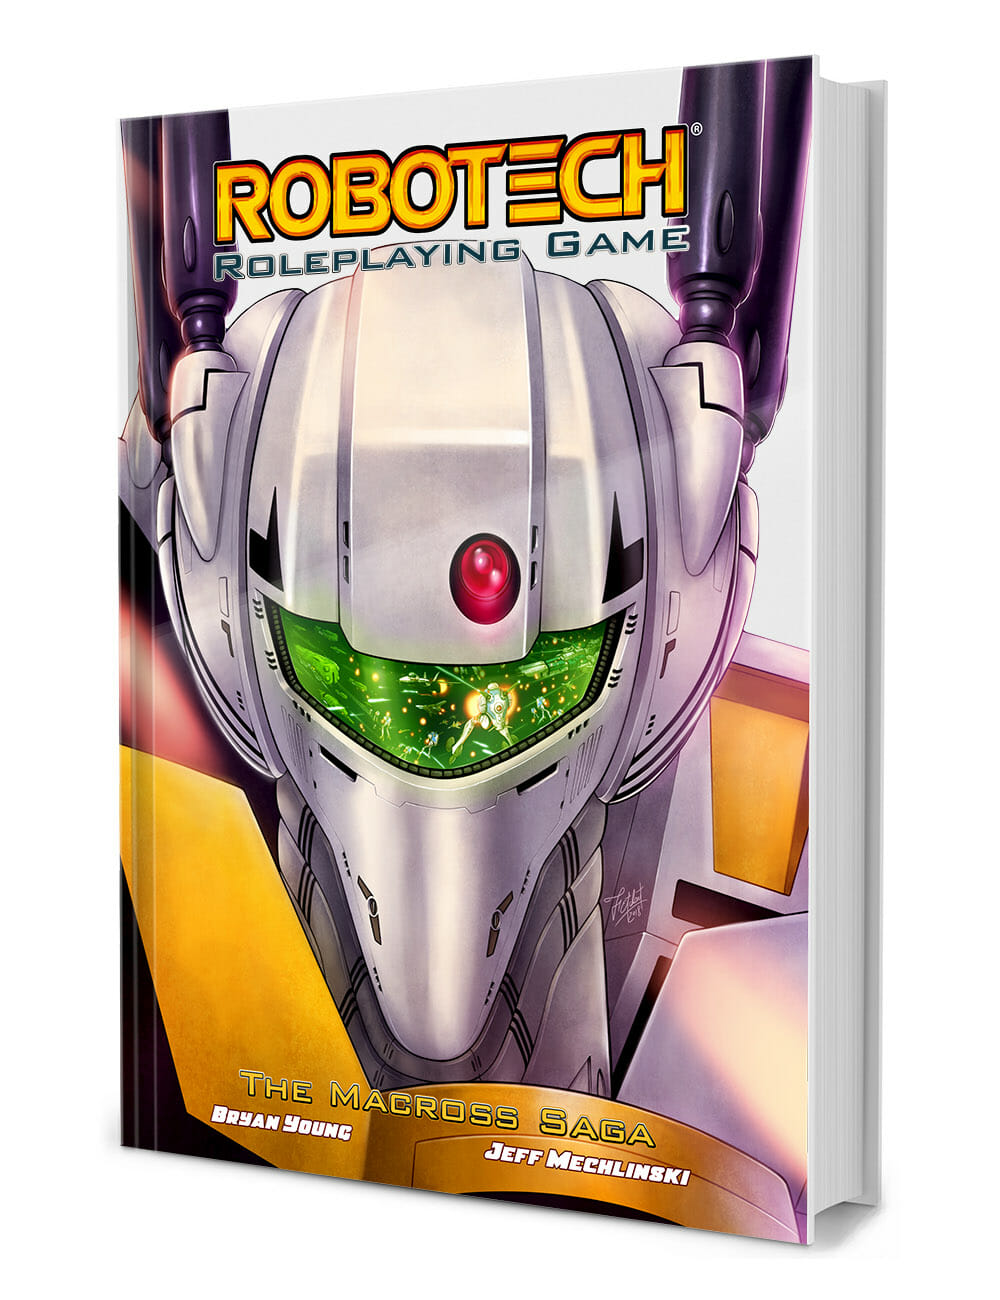 Robotech: The Macross Saga RPG opens for pre-orders